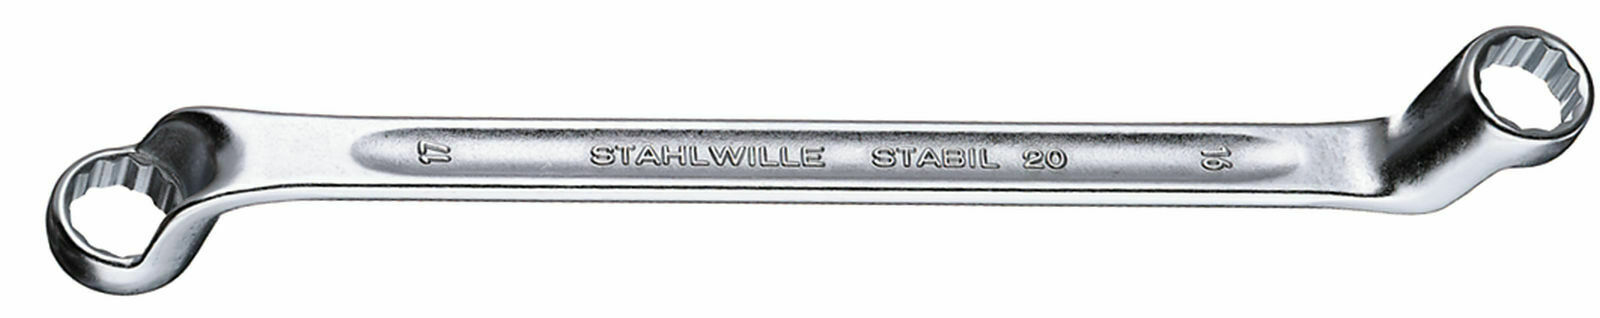 Stahlwille DOUBLE ENDED RING SPANNER 41042528